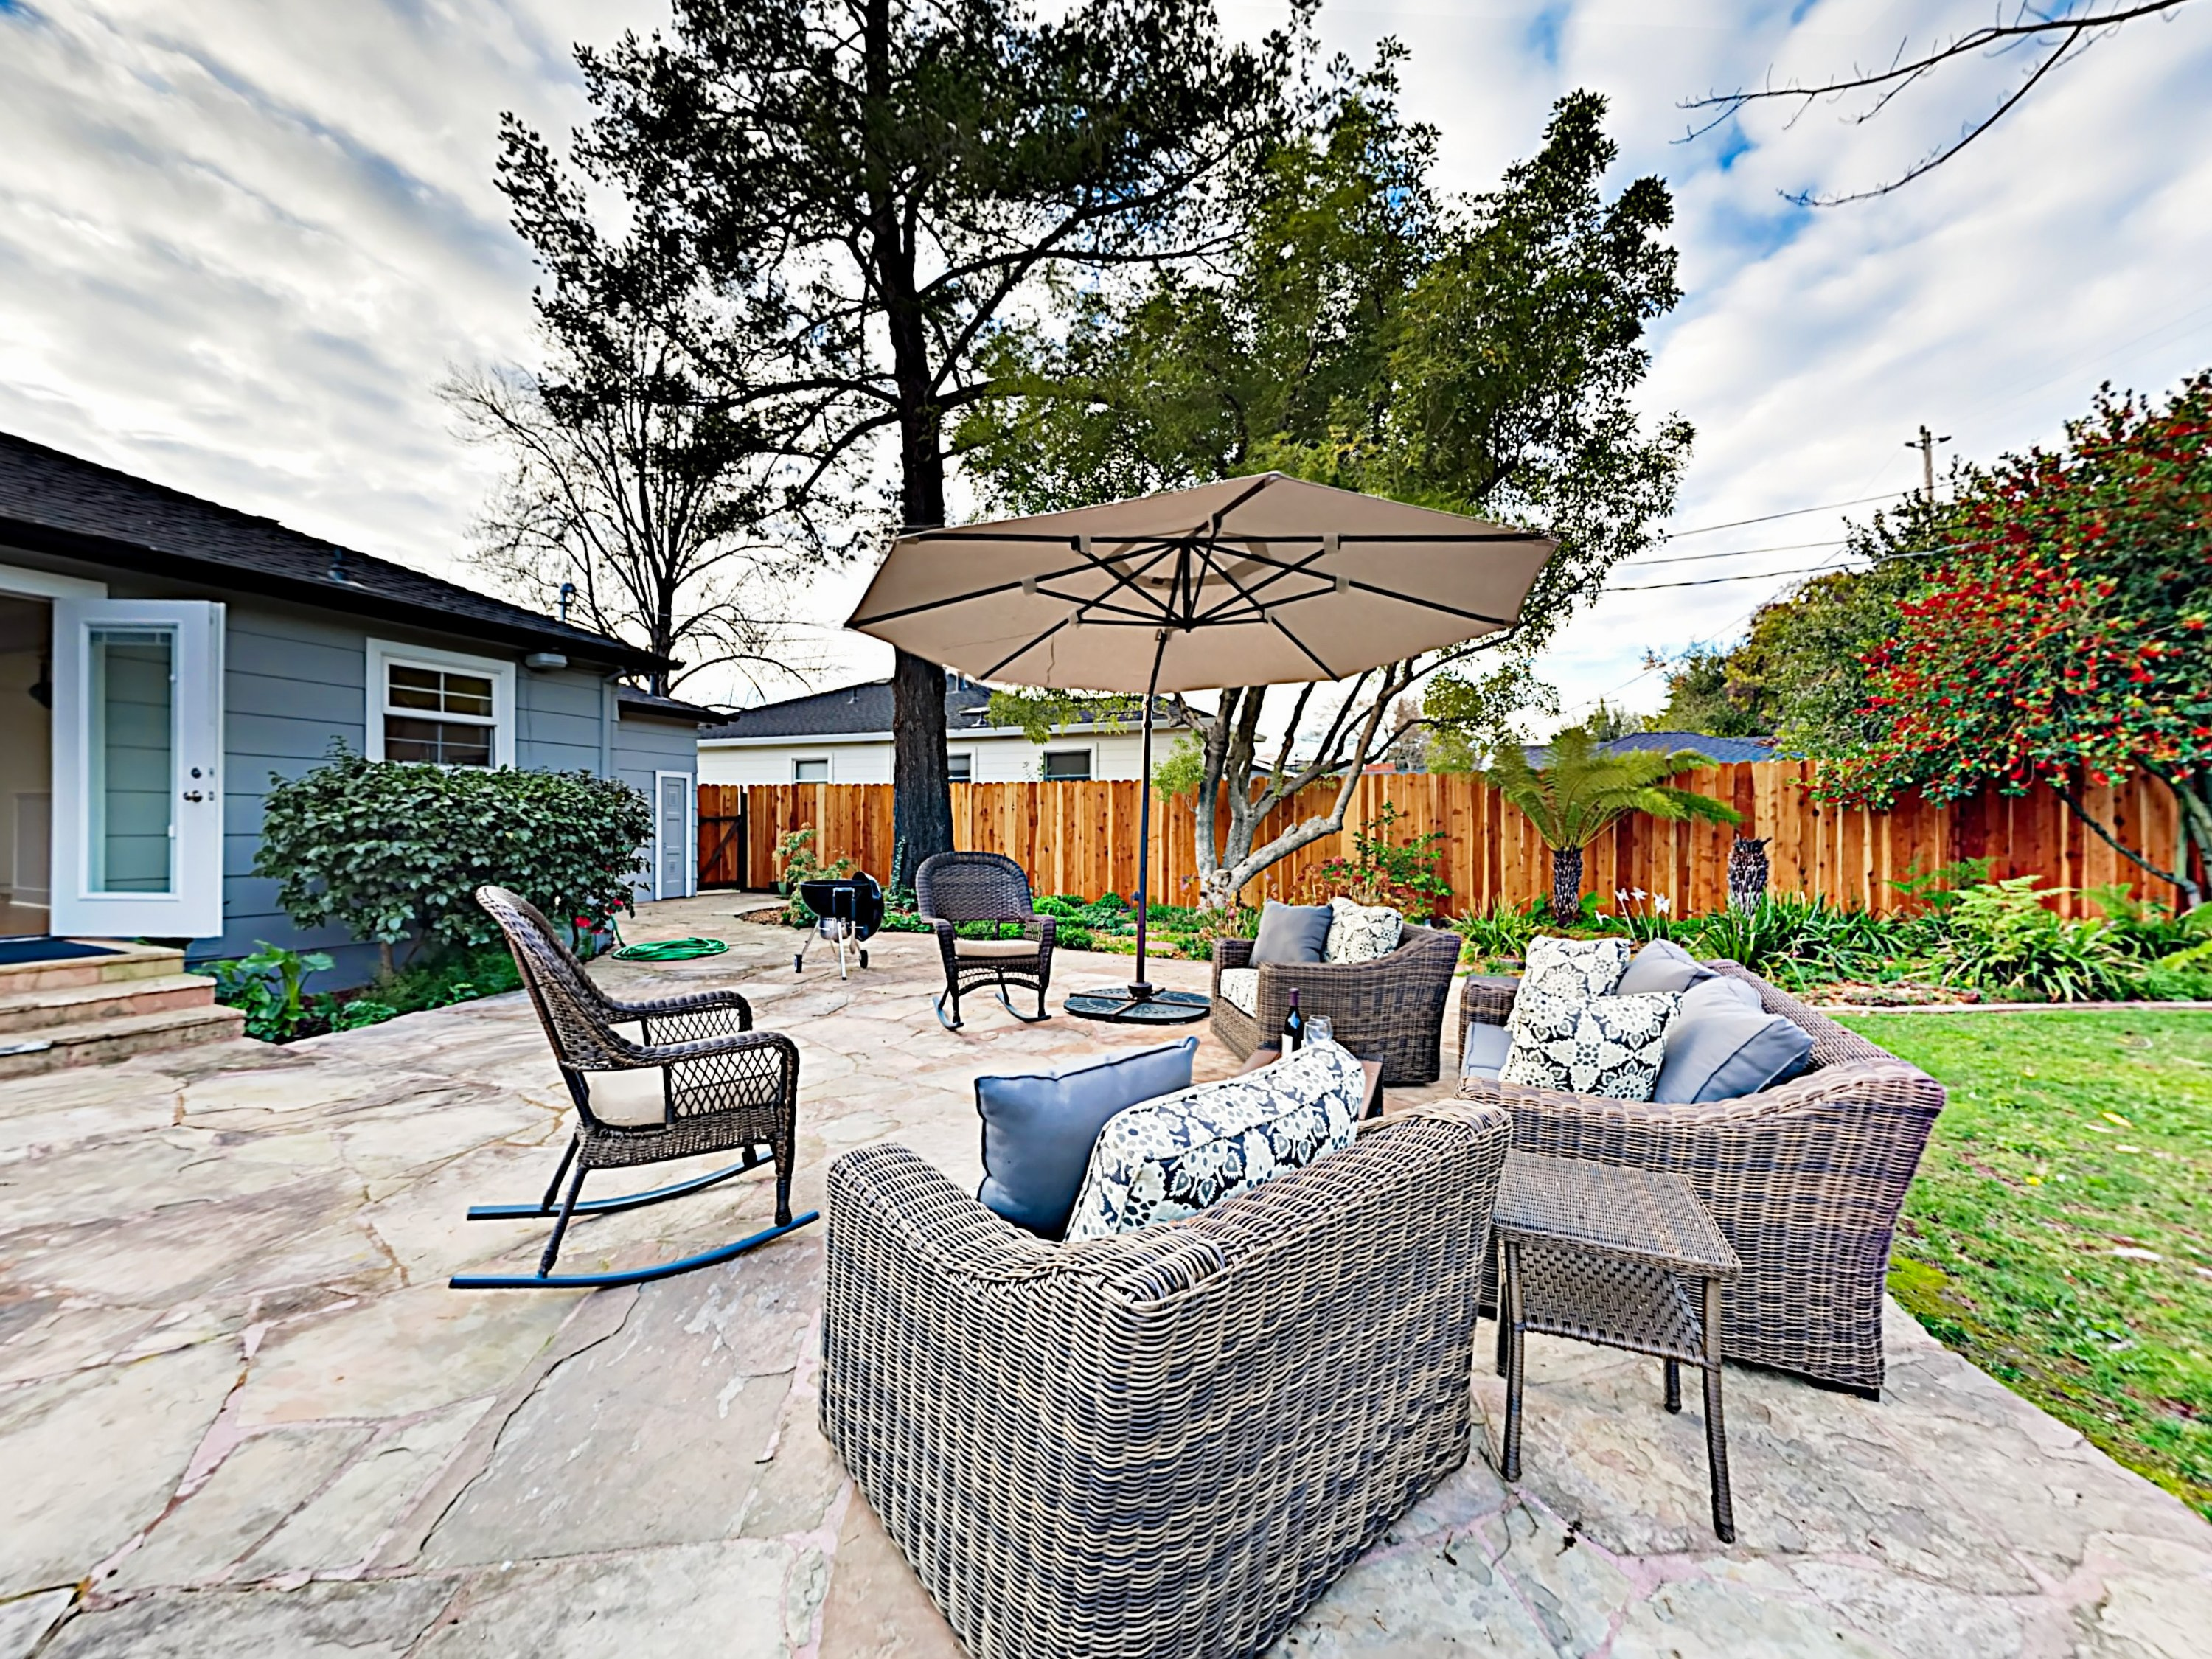 Soak up the sun on a sprawling patio in your fenced backyard.